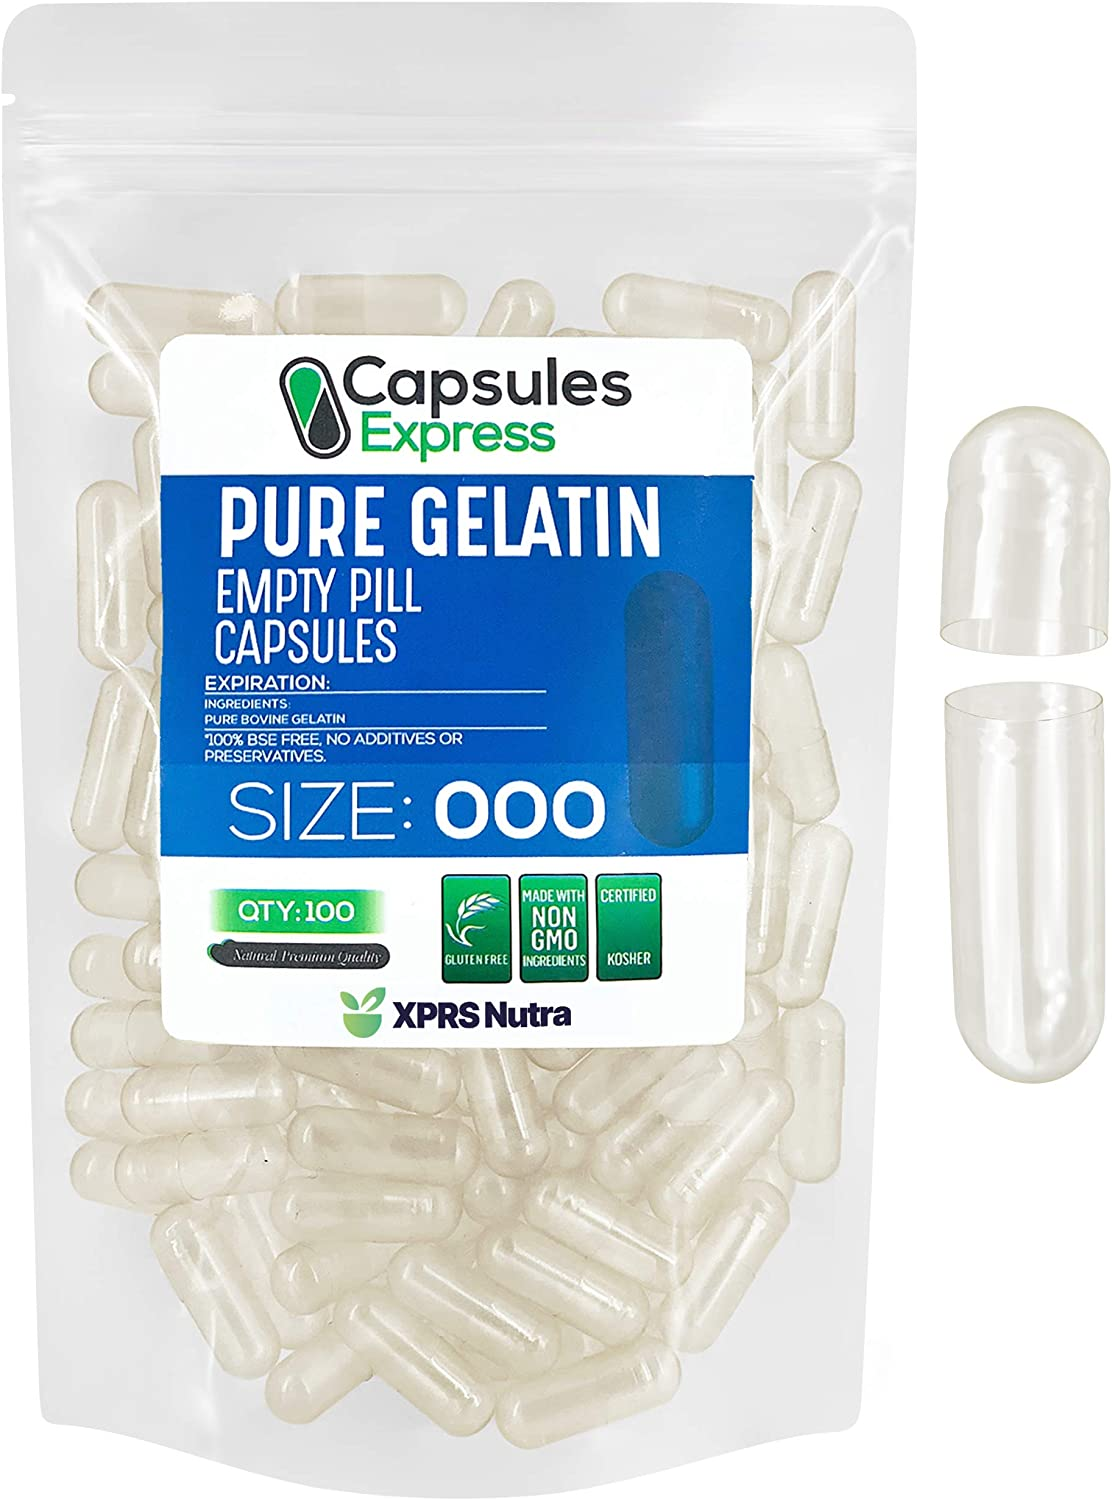 Capsules Express- Size 000 Clear Empty Gelatin Capsules 100 Count - Kosher and Halal - Pure Gelatin Pill Capsule - DIY Powder Filling